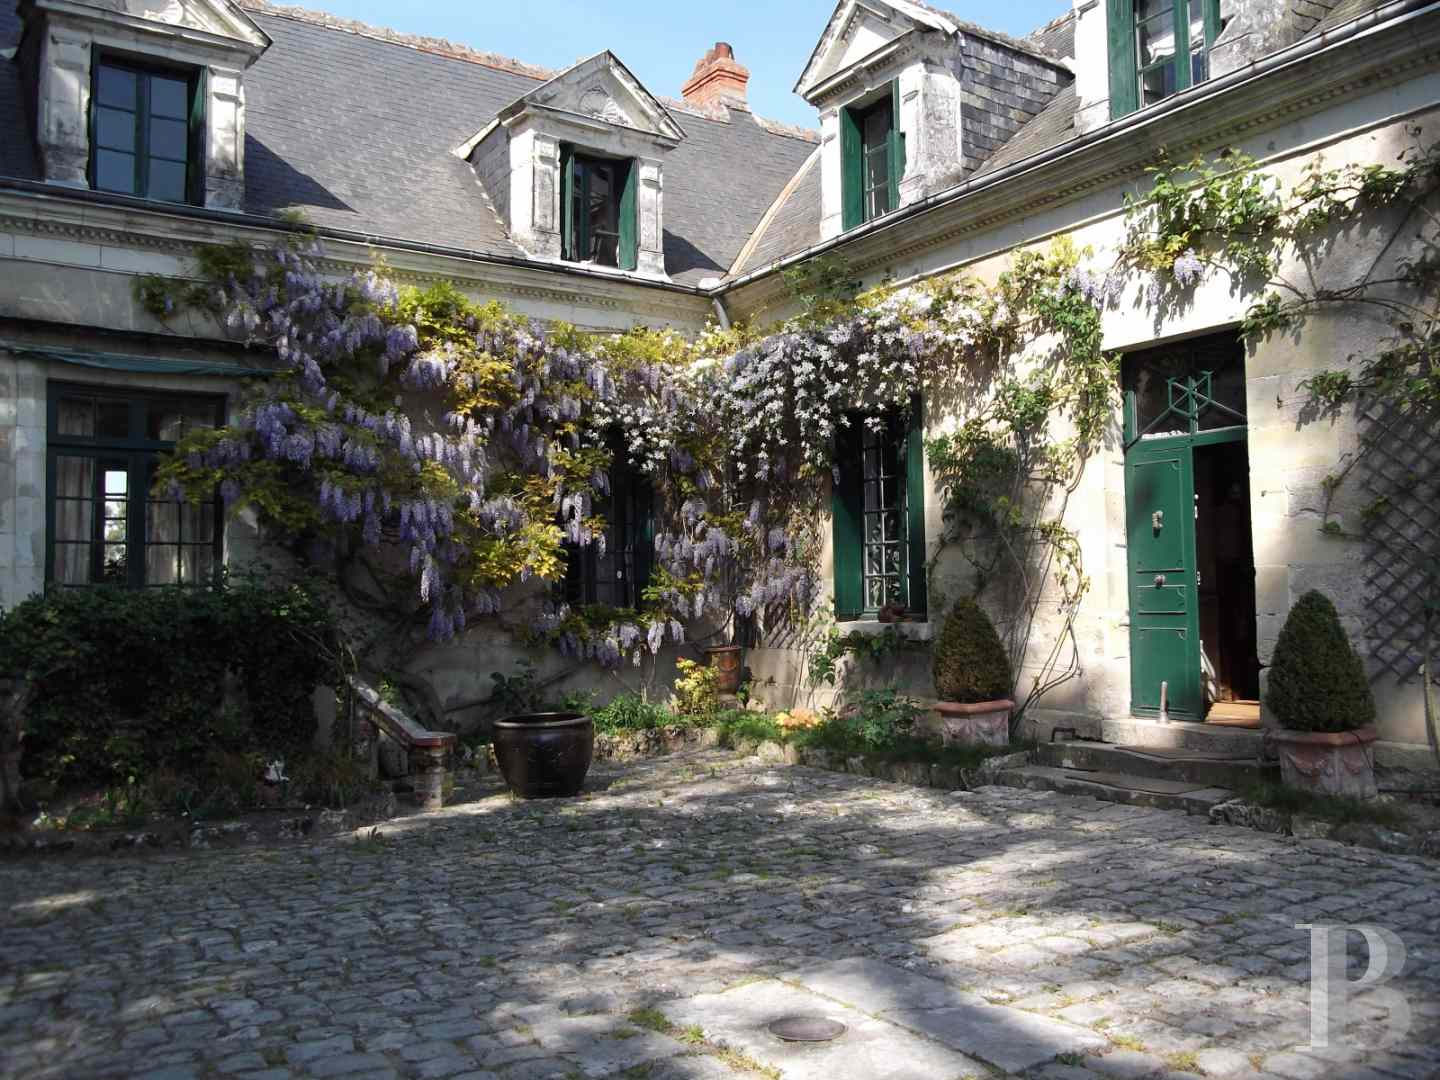 character properties France center val de loire character houses - 1 zoom